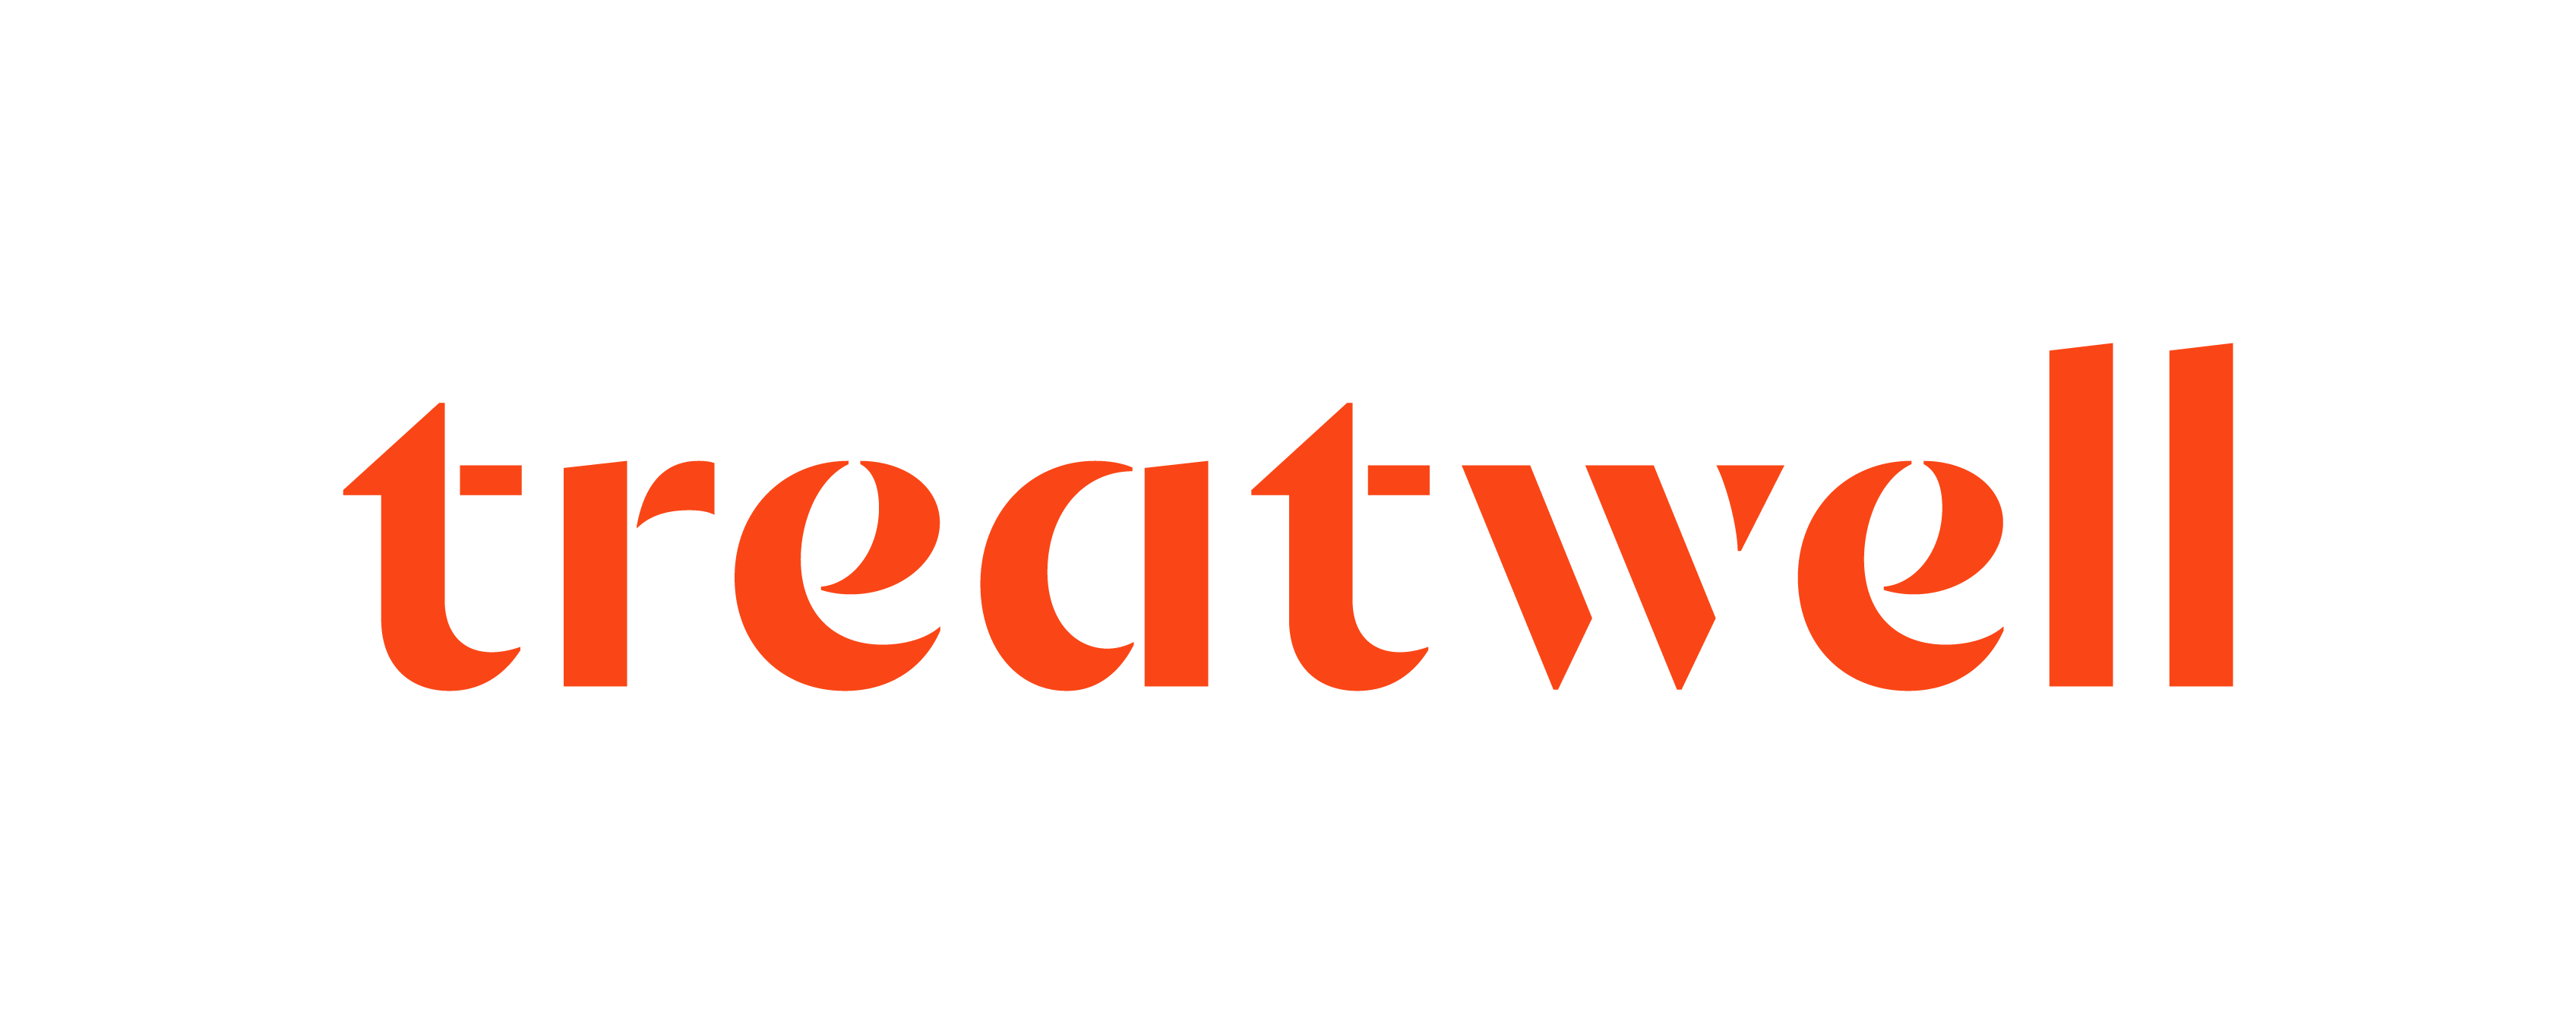 Treatwell Booking Partner